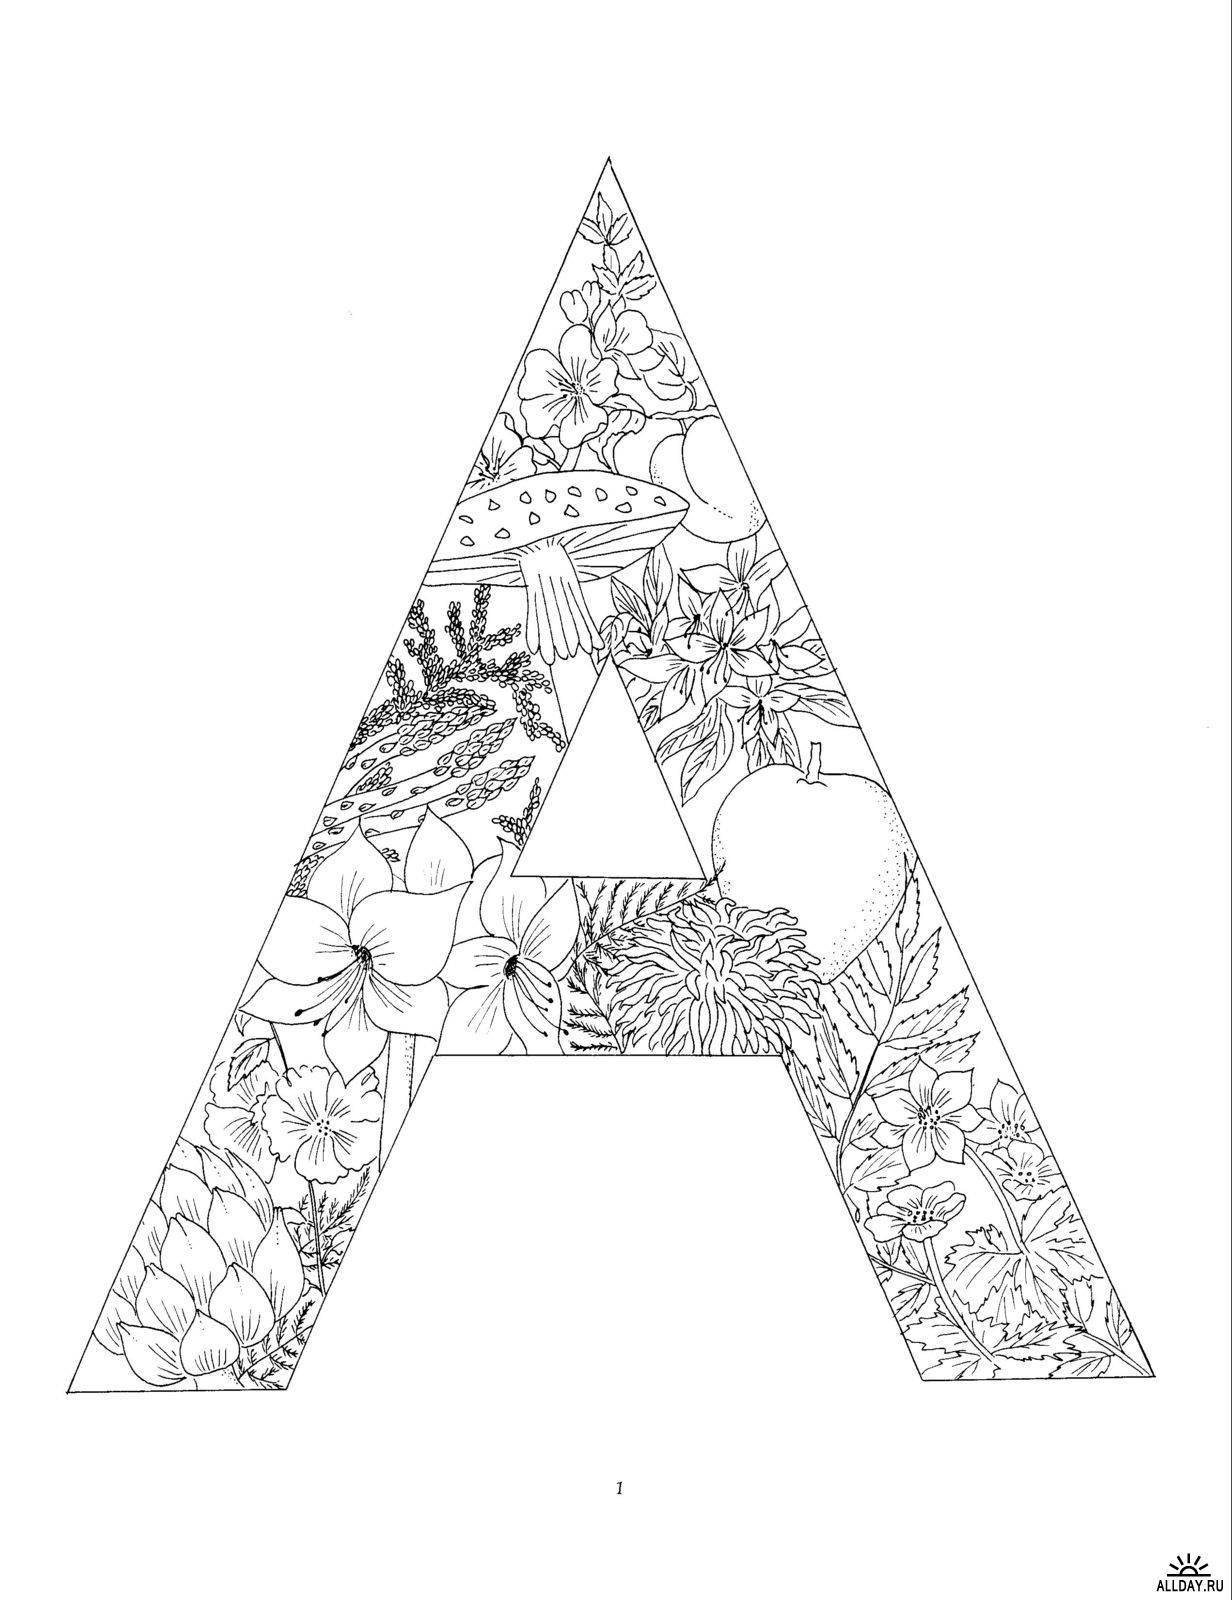 Coloring Pages : Coloring For Adults Letter Nice Intricate ...